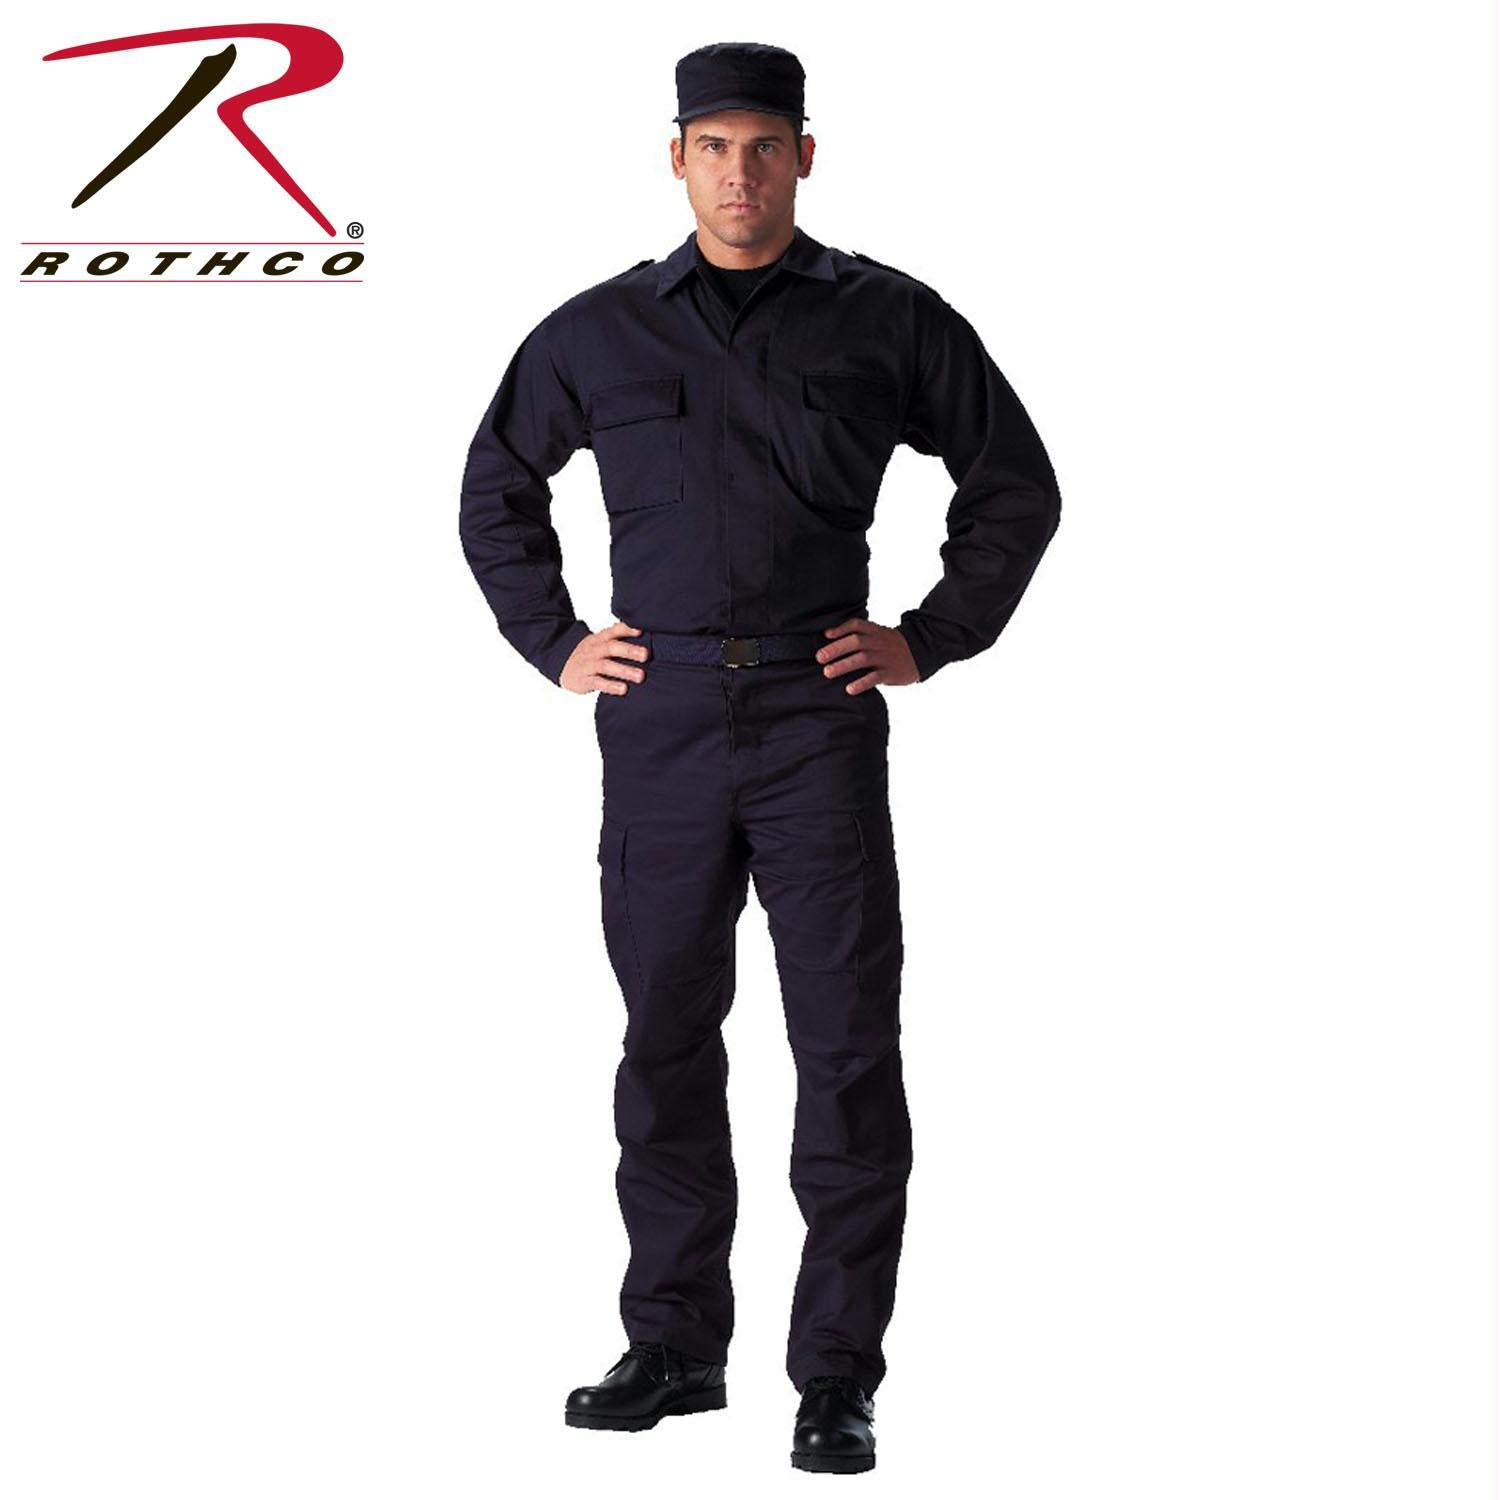 Rothco Tactical BDU Shirts - Navy Blue / S